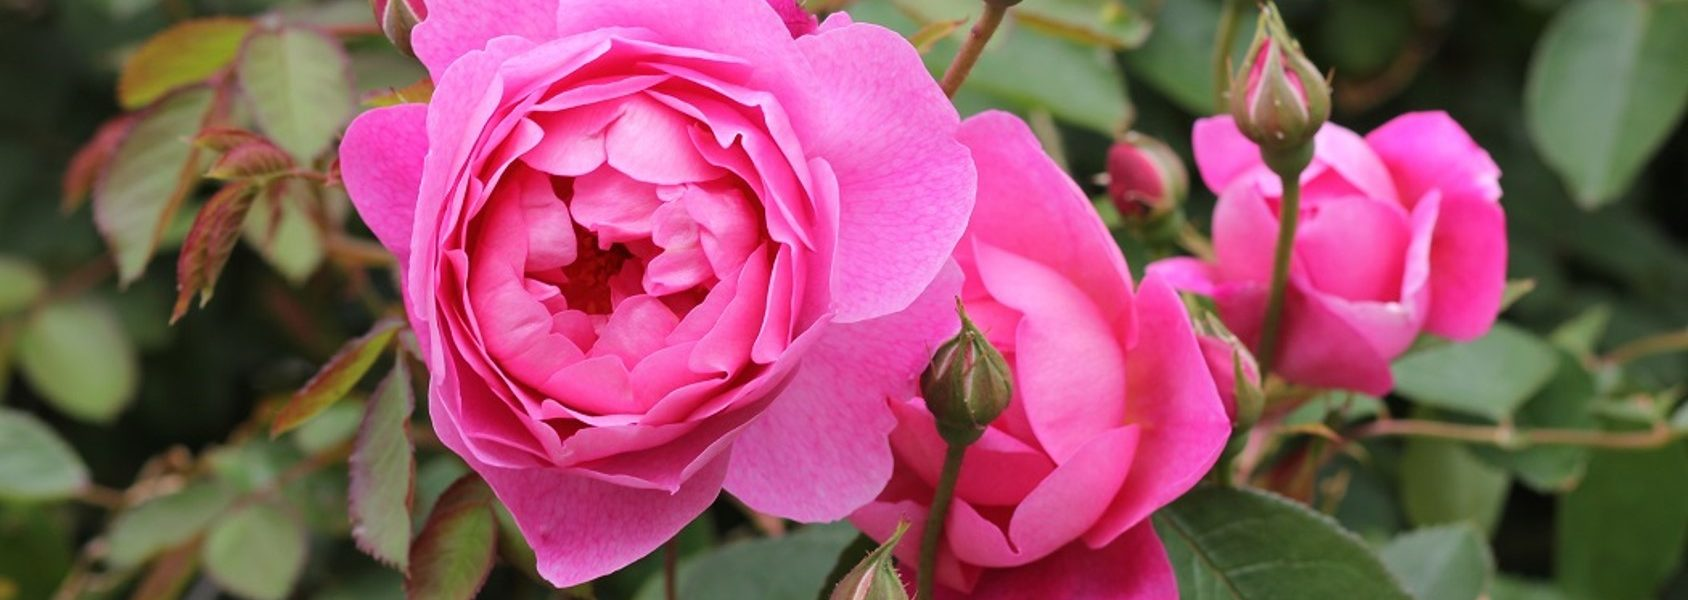 royal jubilee rose review the right roses score best top garden store david austin english roses rose products rose rating the right leap rose food